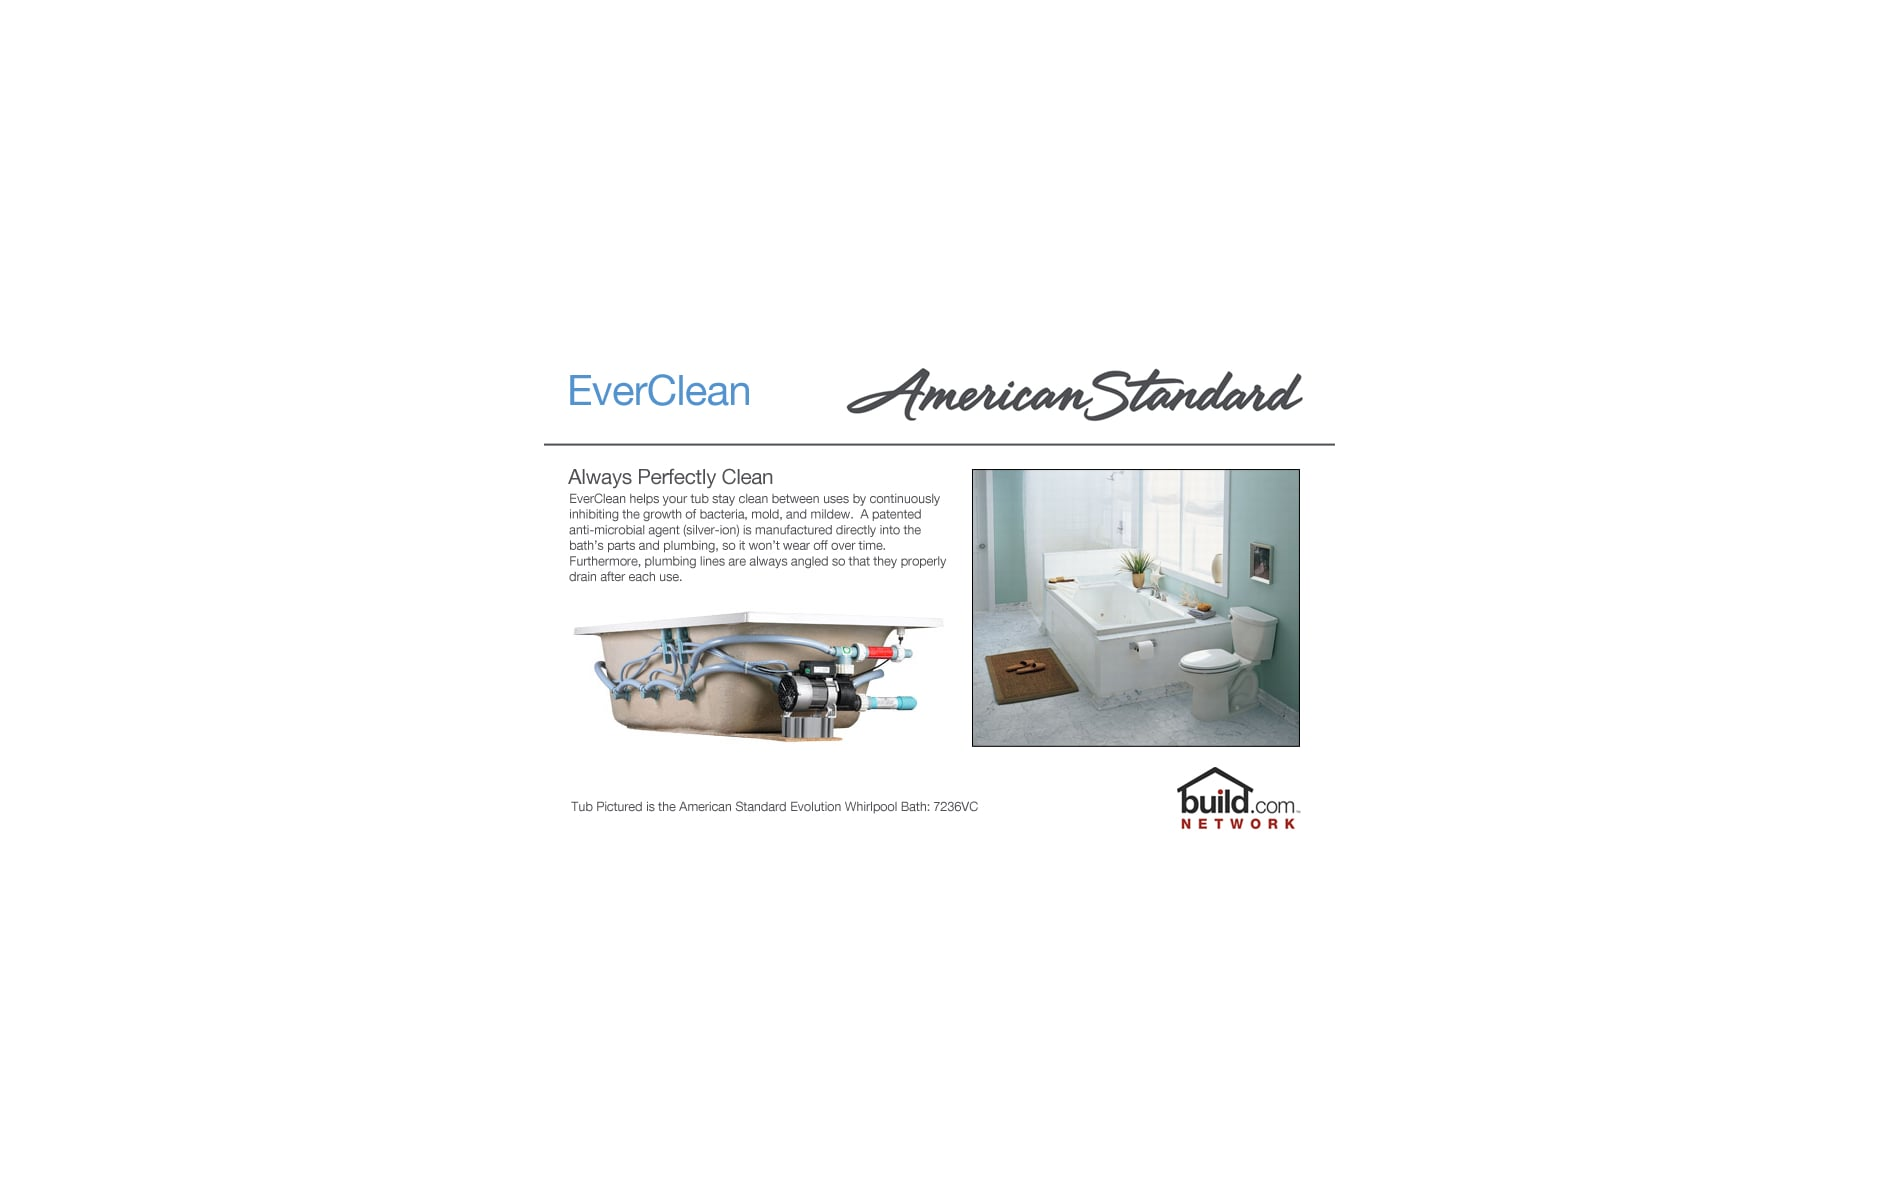 How To Clean American Standard Jetted Tub